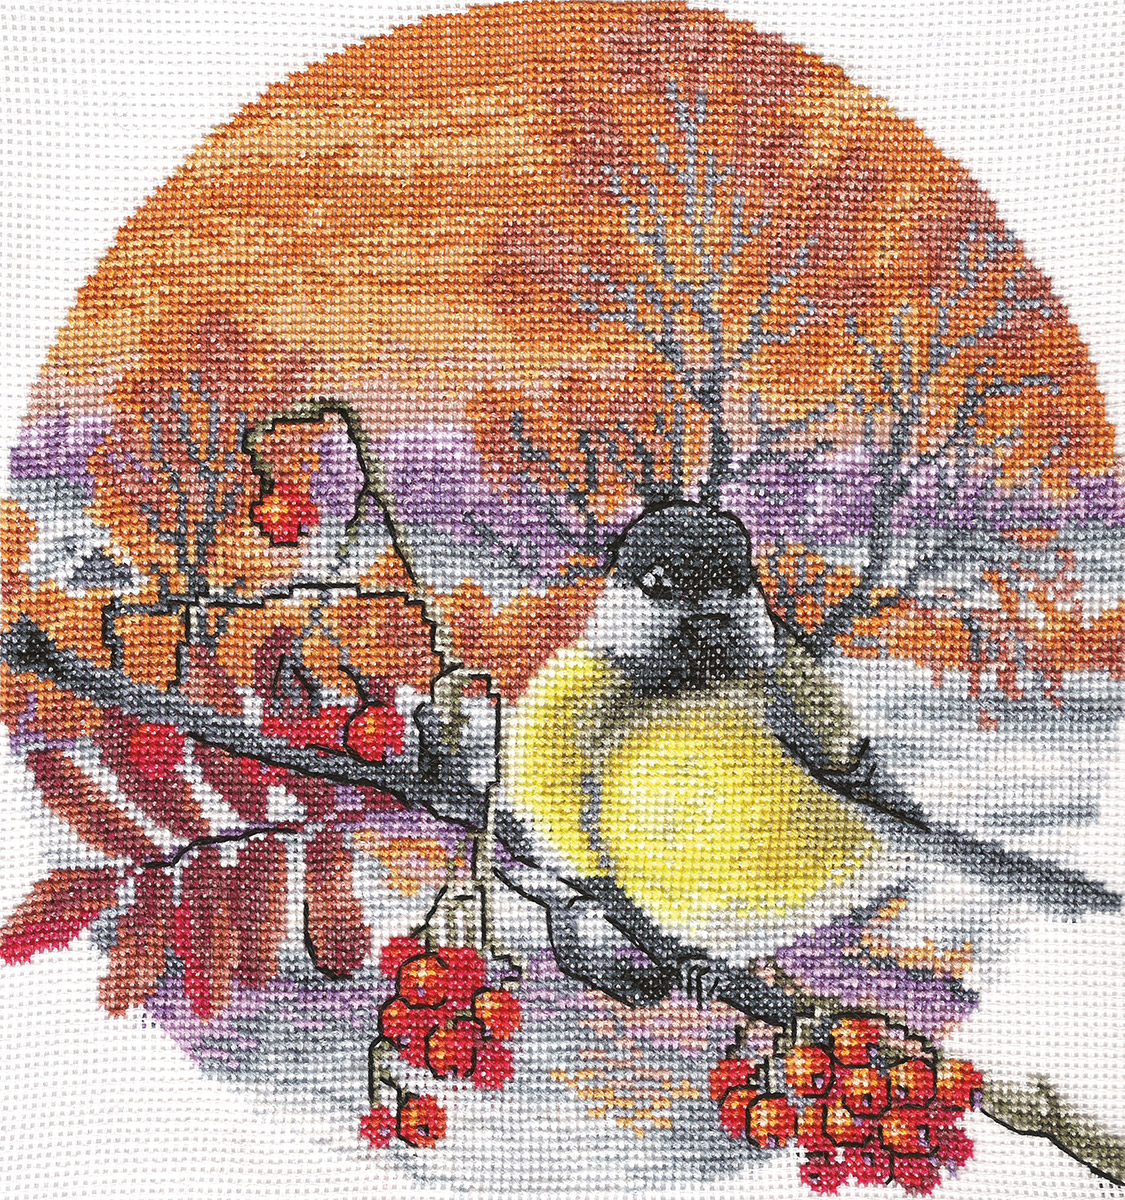 Embroidery kits PANNA PT-0165 Frosty Evening